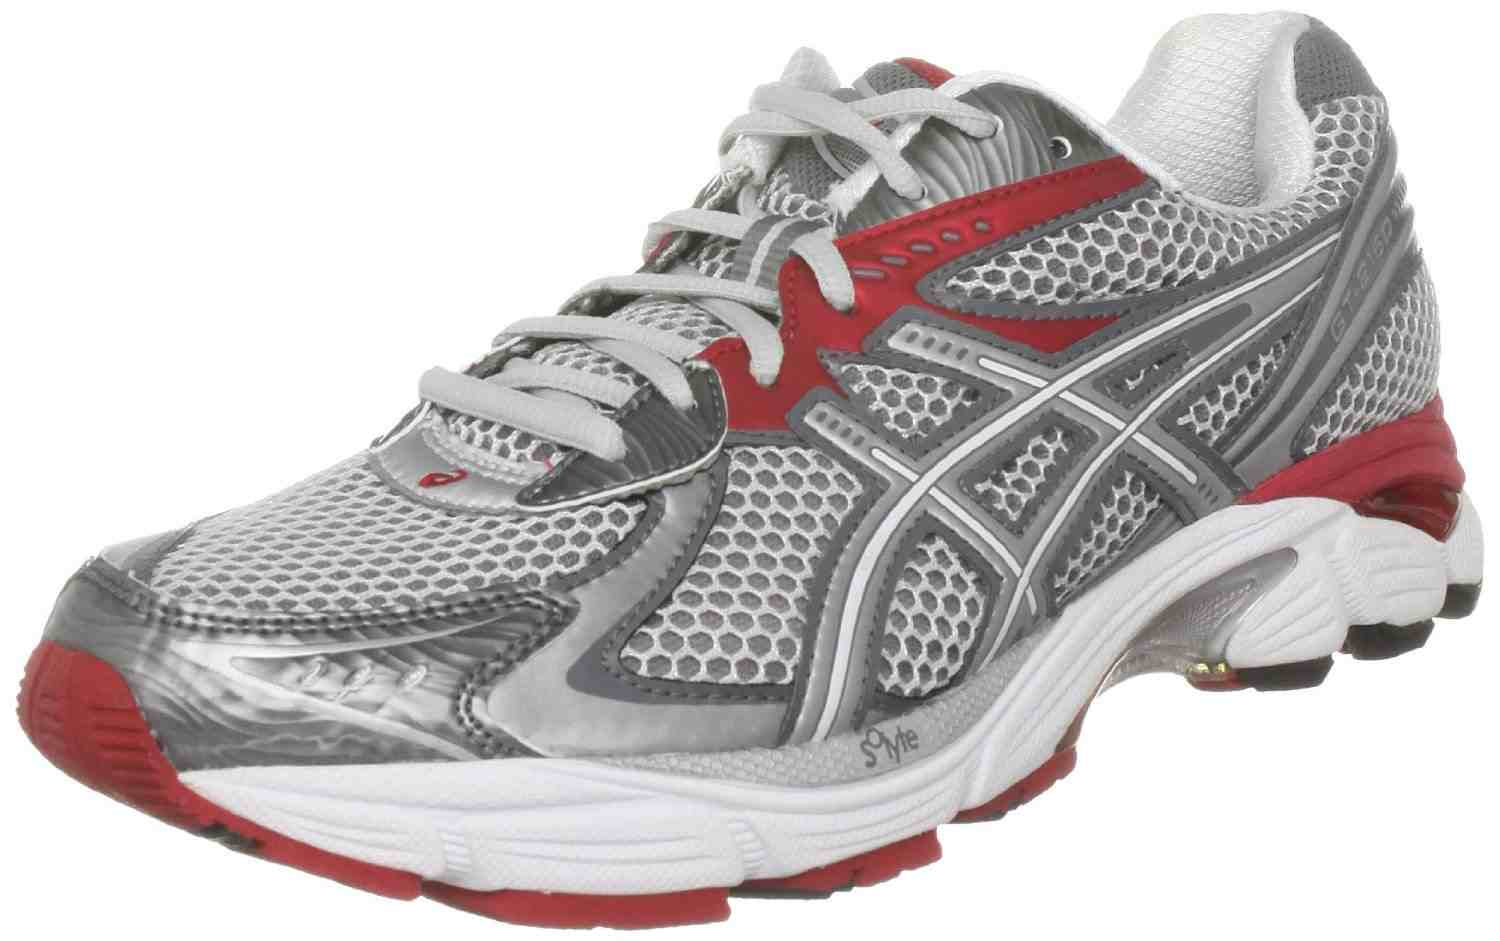 Top Running Shoes For Overpronation